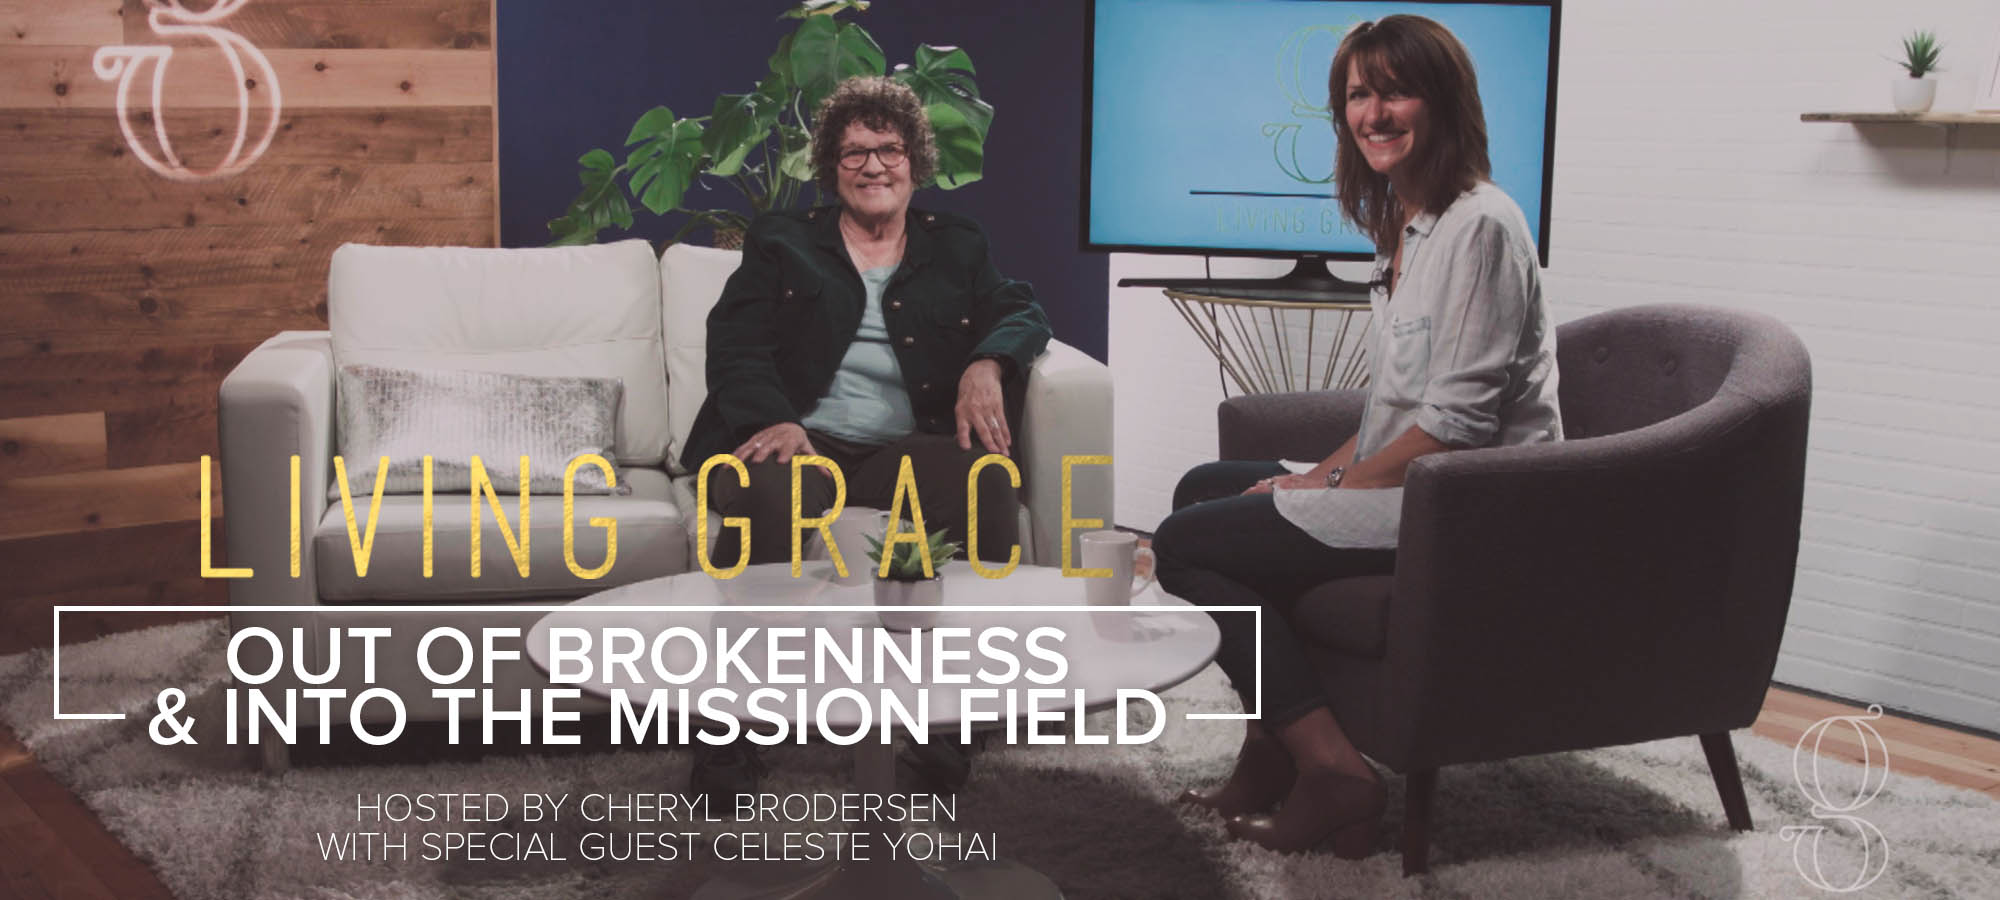 Out of Brokenness & into the Mission Field